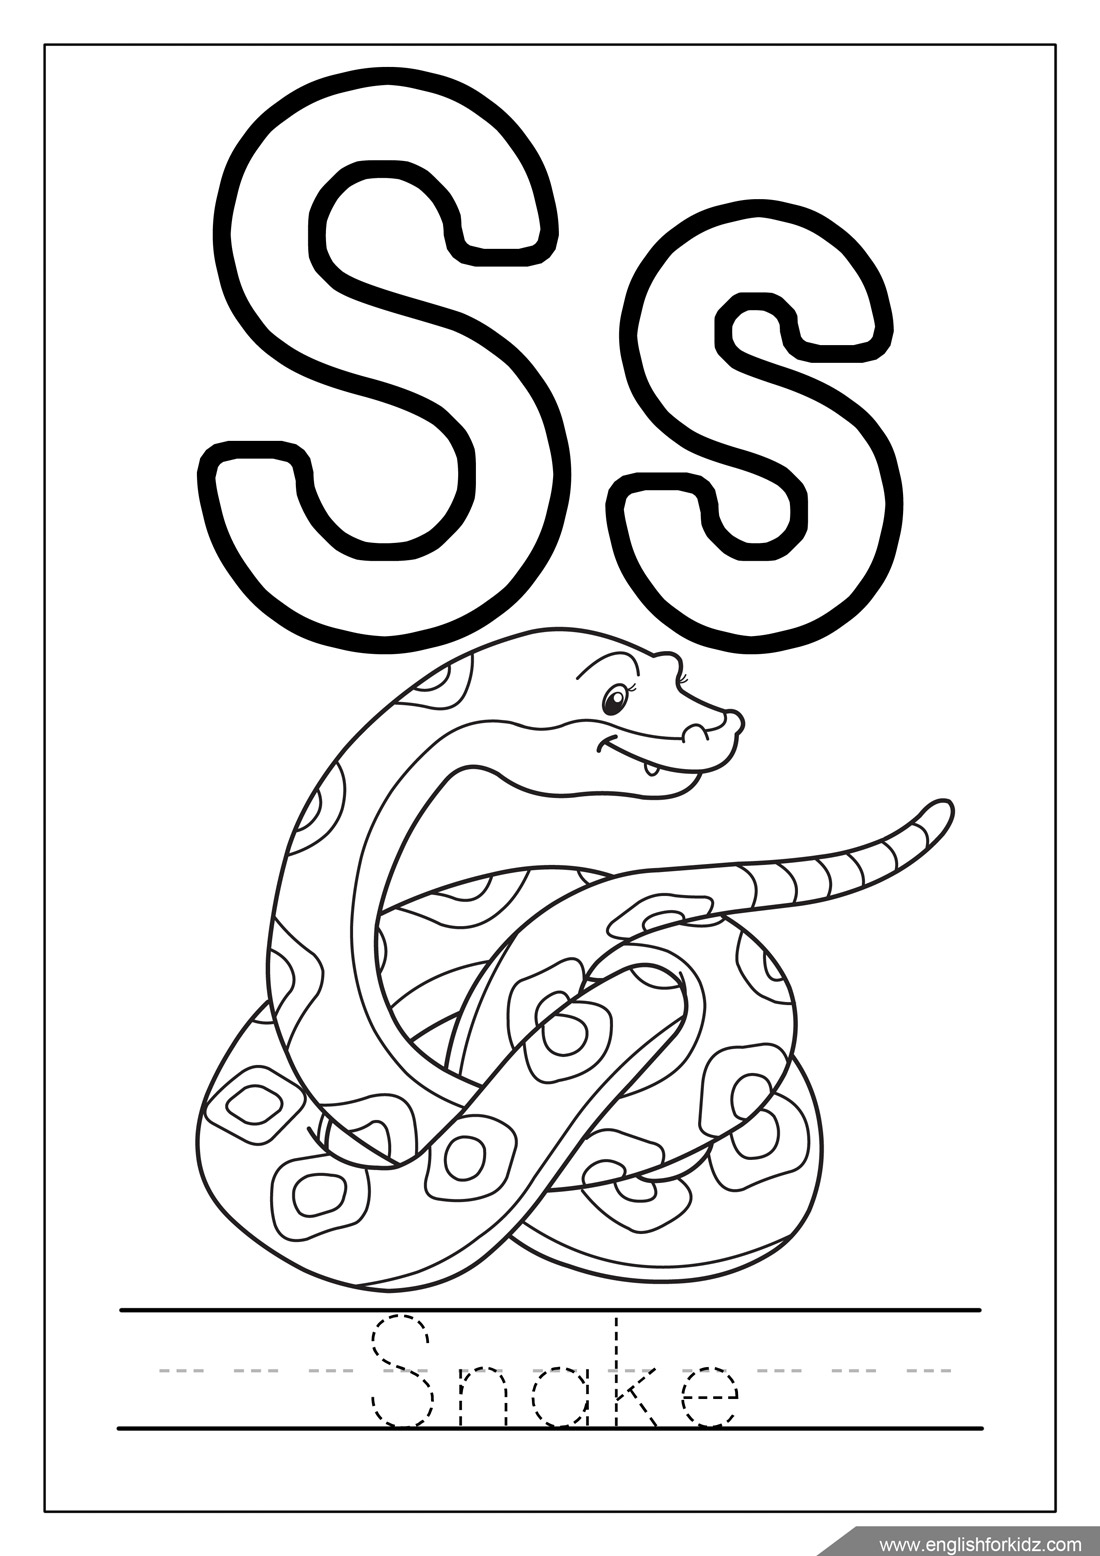 Alphabet Coloring Pages Letters K T S Coloring Page